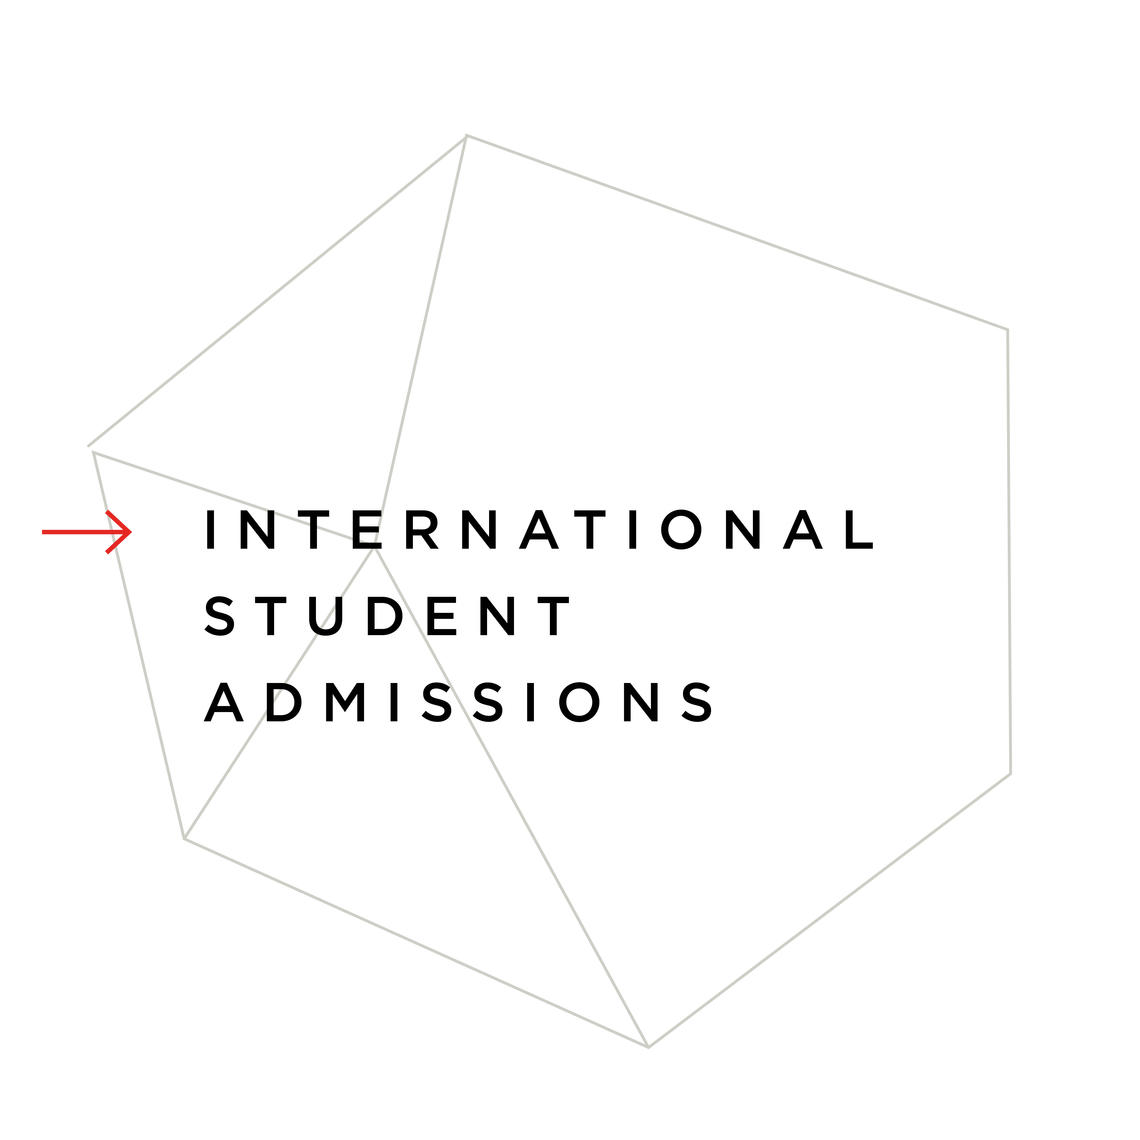 International Student Admissions